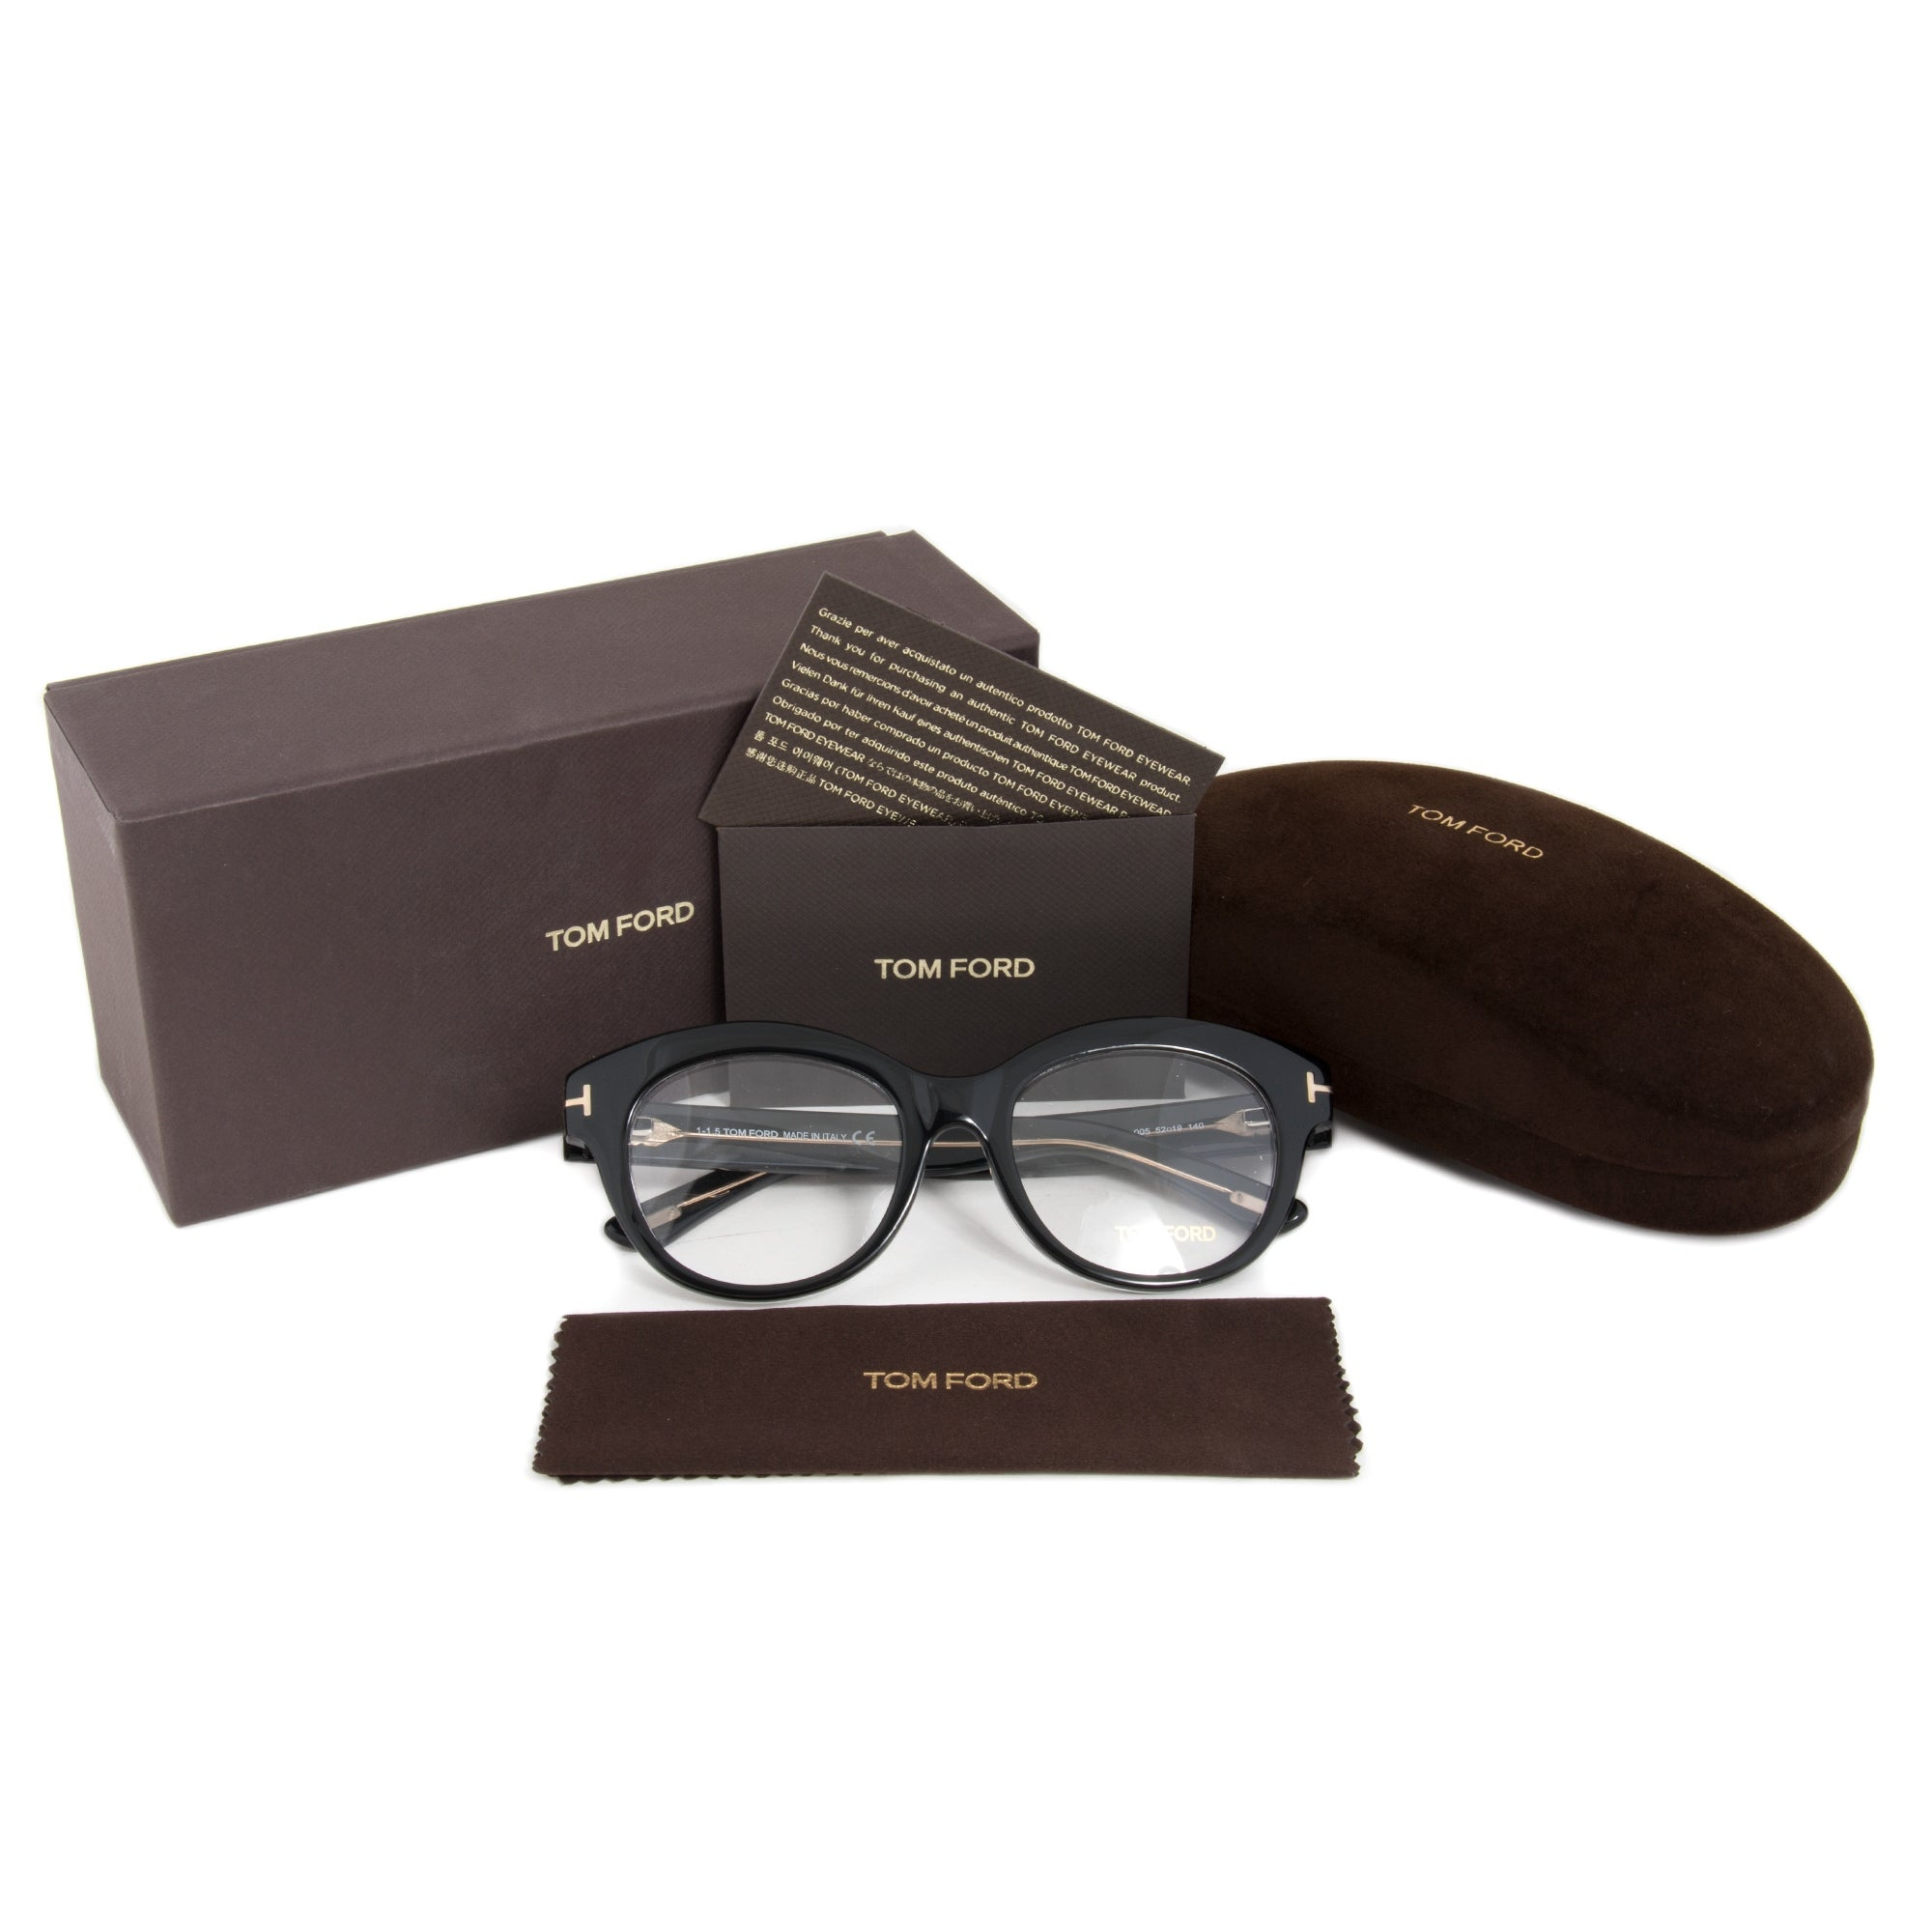 32196df163b Shop Tom Ford Eyeglasses Frame TF5377 005 - Free Shipping Today - Overstock  - 19622822